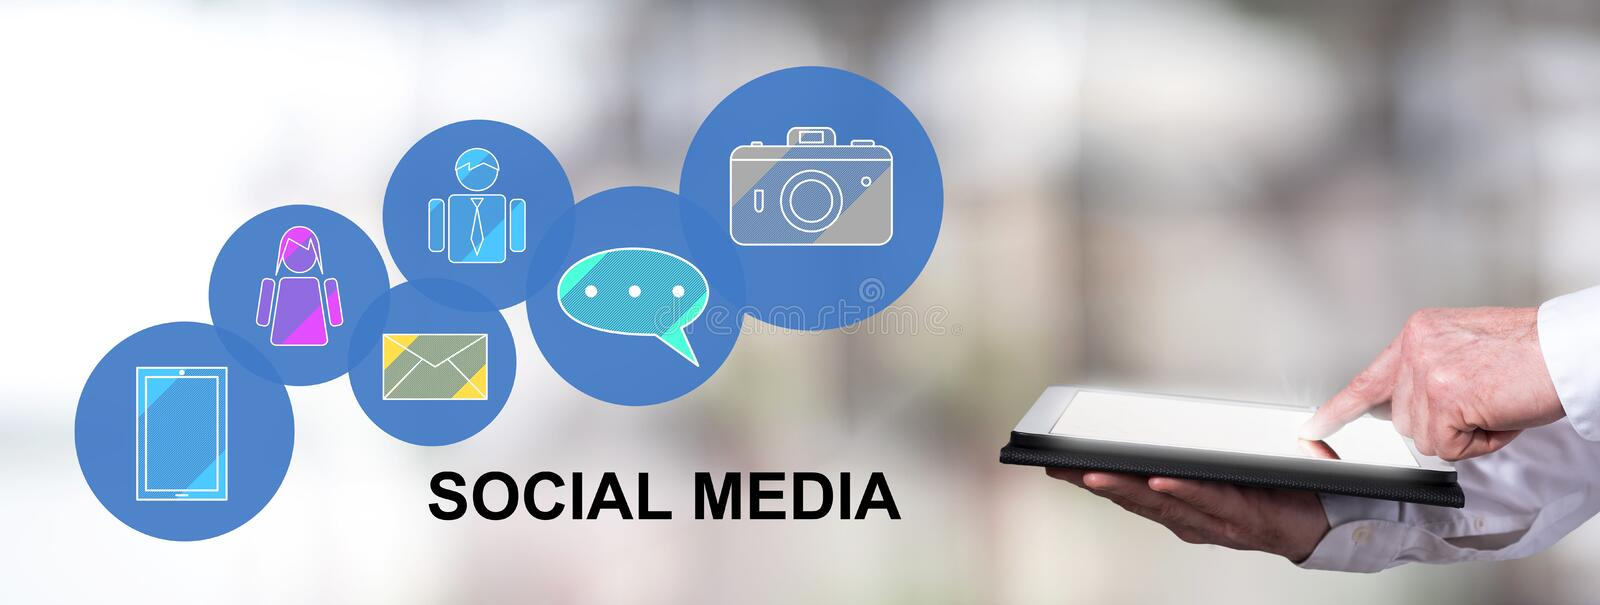 Social media concept with man using a tablet stock images